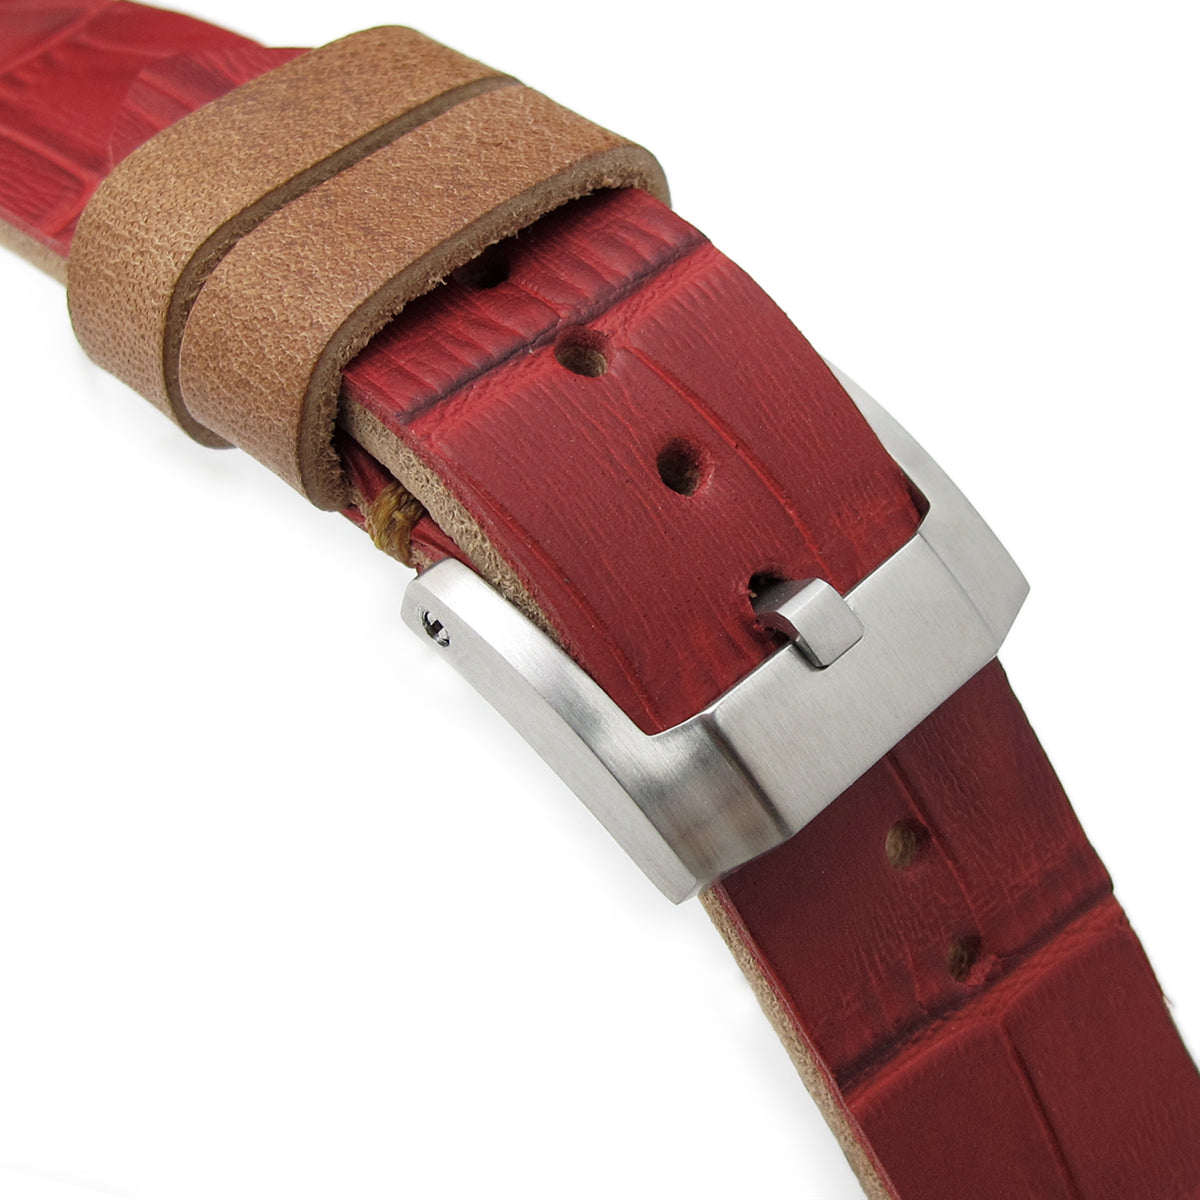 20mm MiLTAT Antipode Watch Strap Matte Red CrocoCalf in Tan Hand Stitches Strapcode Watch Bands